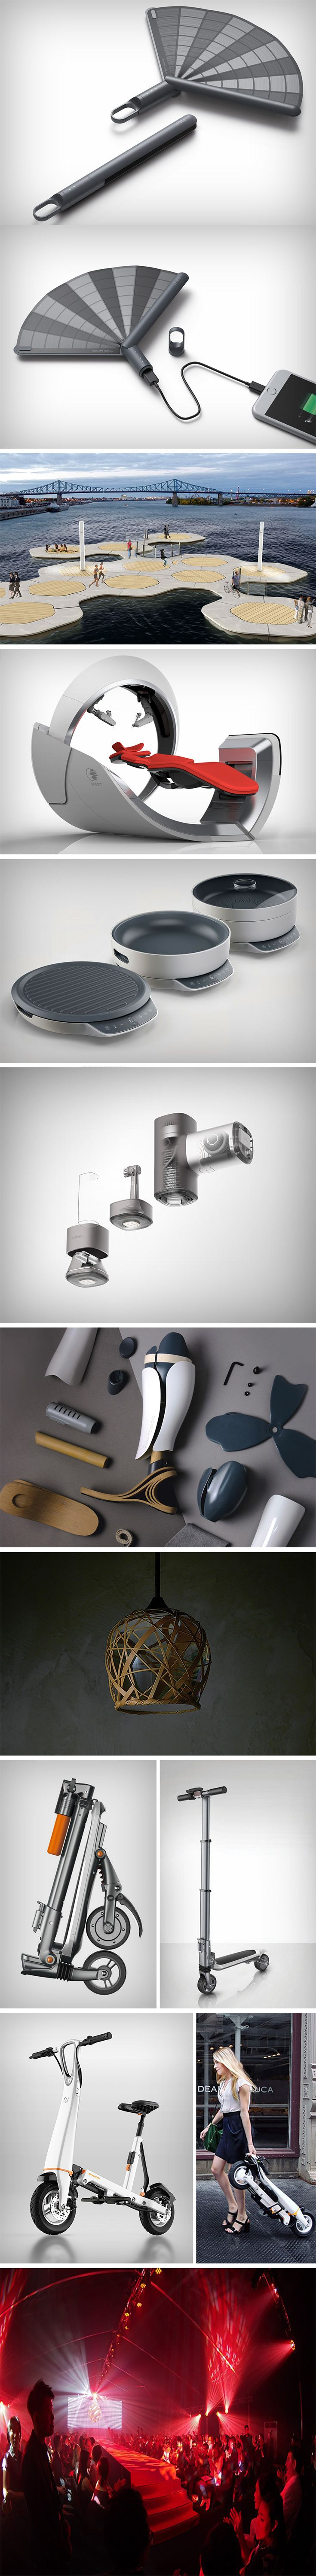 28 best YD Giveaway/Competitions images on Pinterest | Design ...